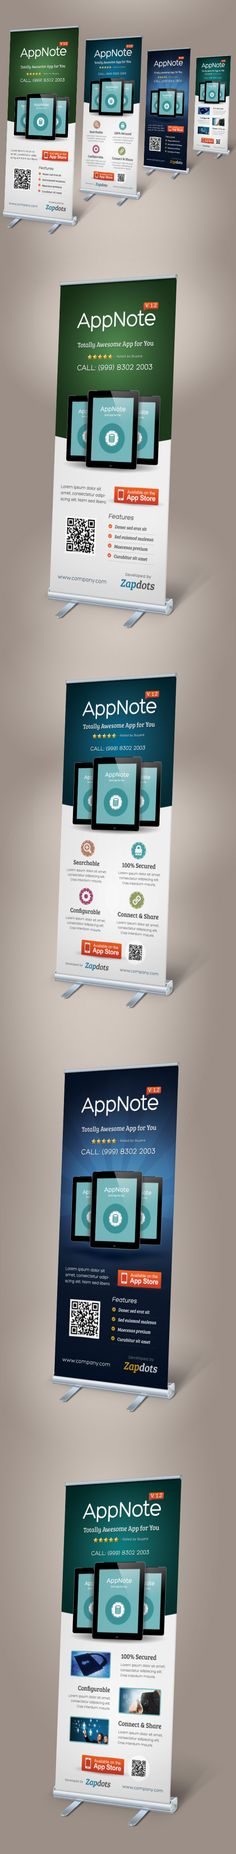 Mobile App Promotion Roll-up Banner Templates on Behance